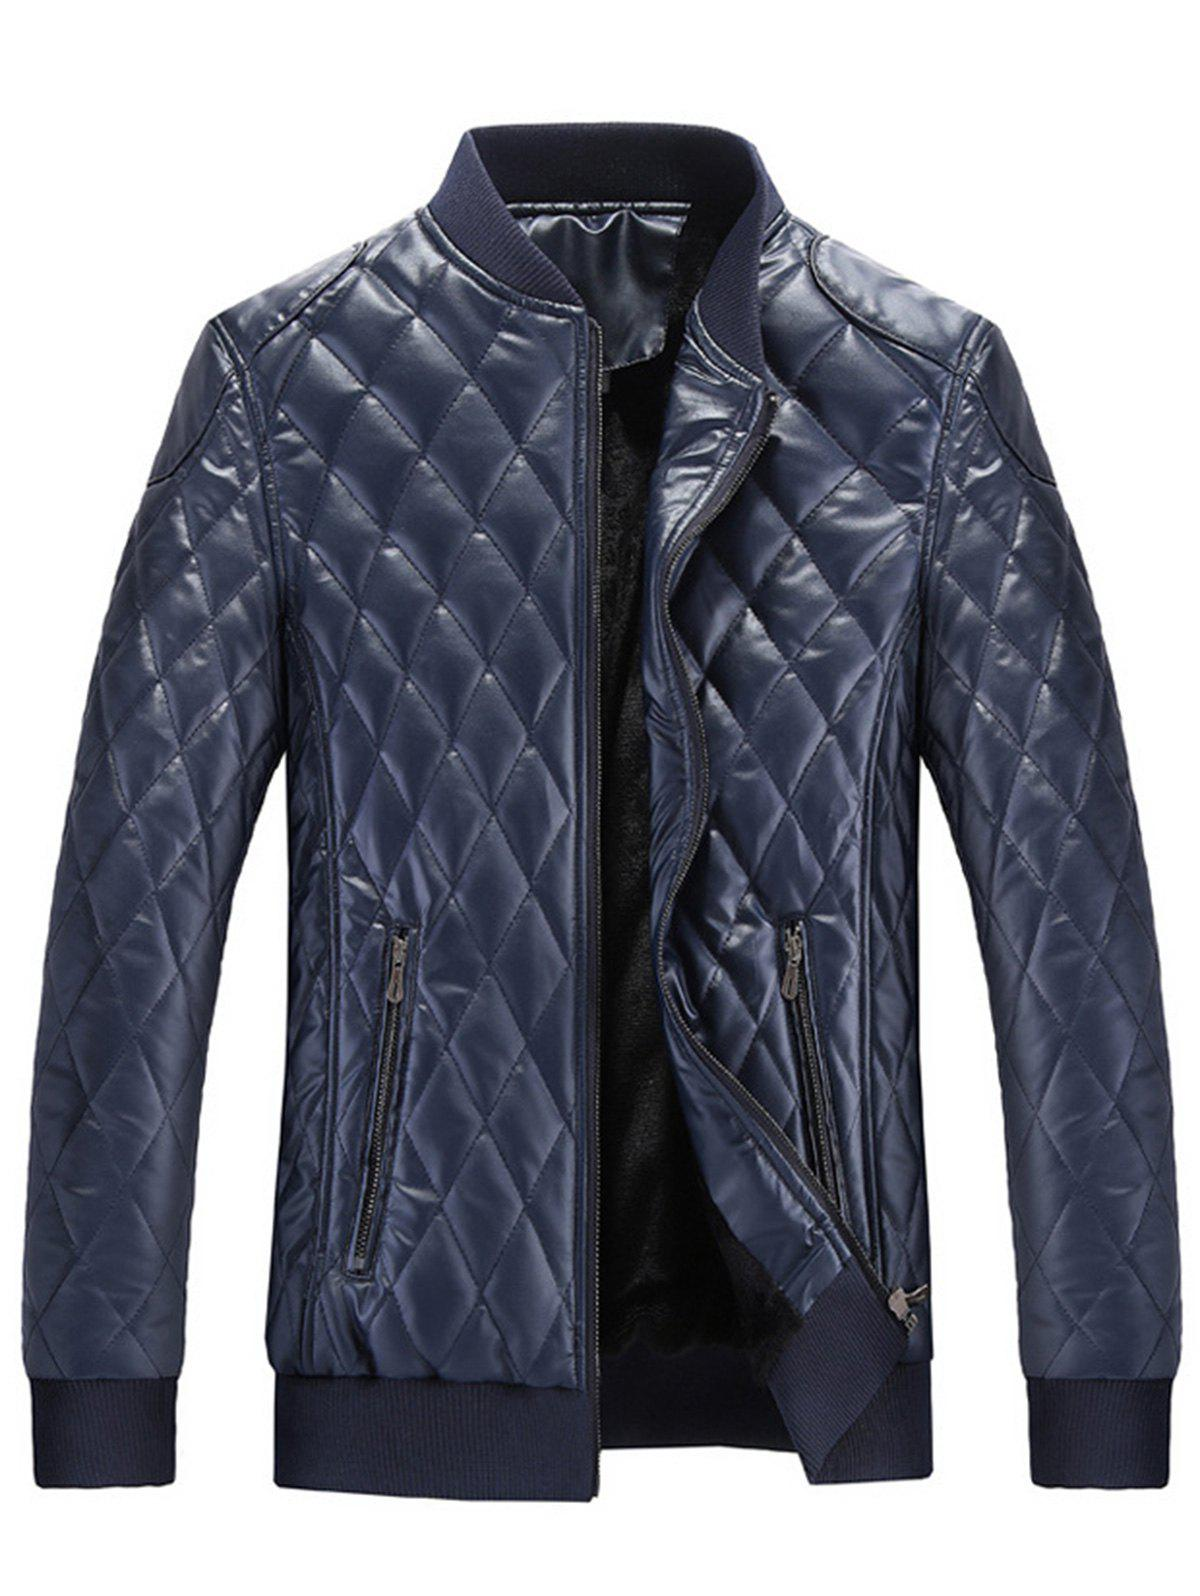 Stand Collar Argyle Artificial Leather Jacket - BLUE M